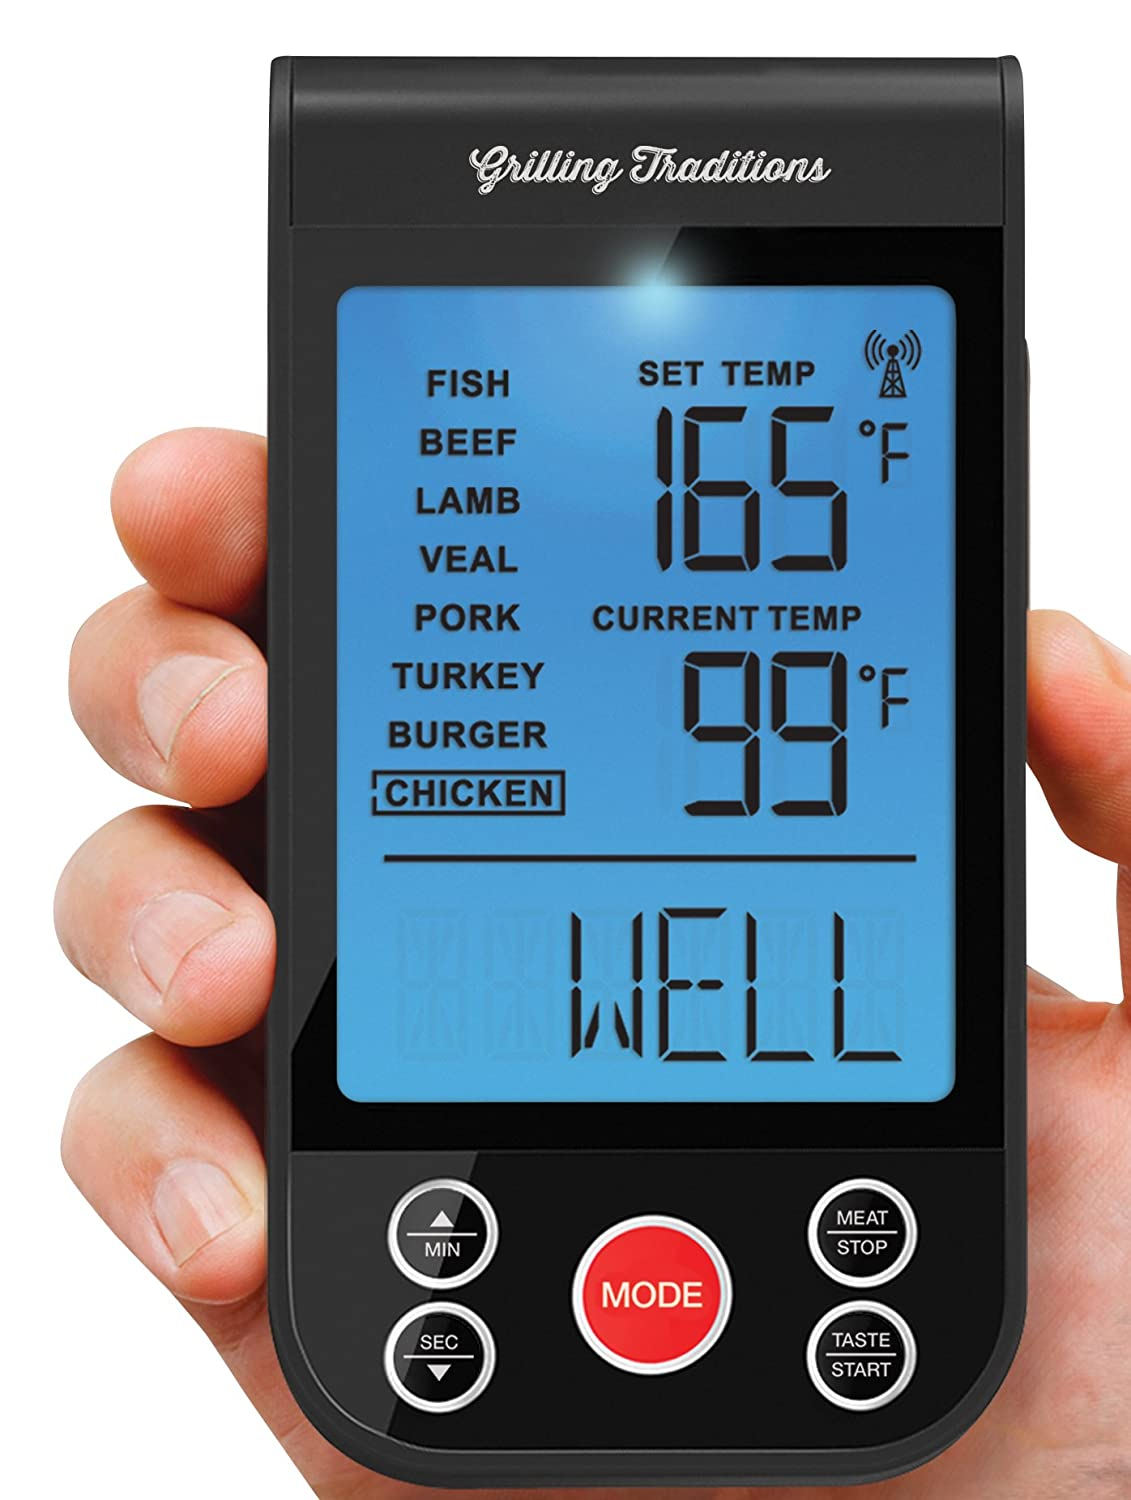 Amazon.com : Grilling Traditions Wireless Grilling Thermometer ...